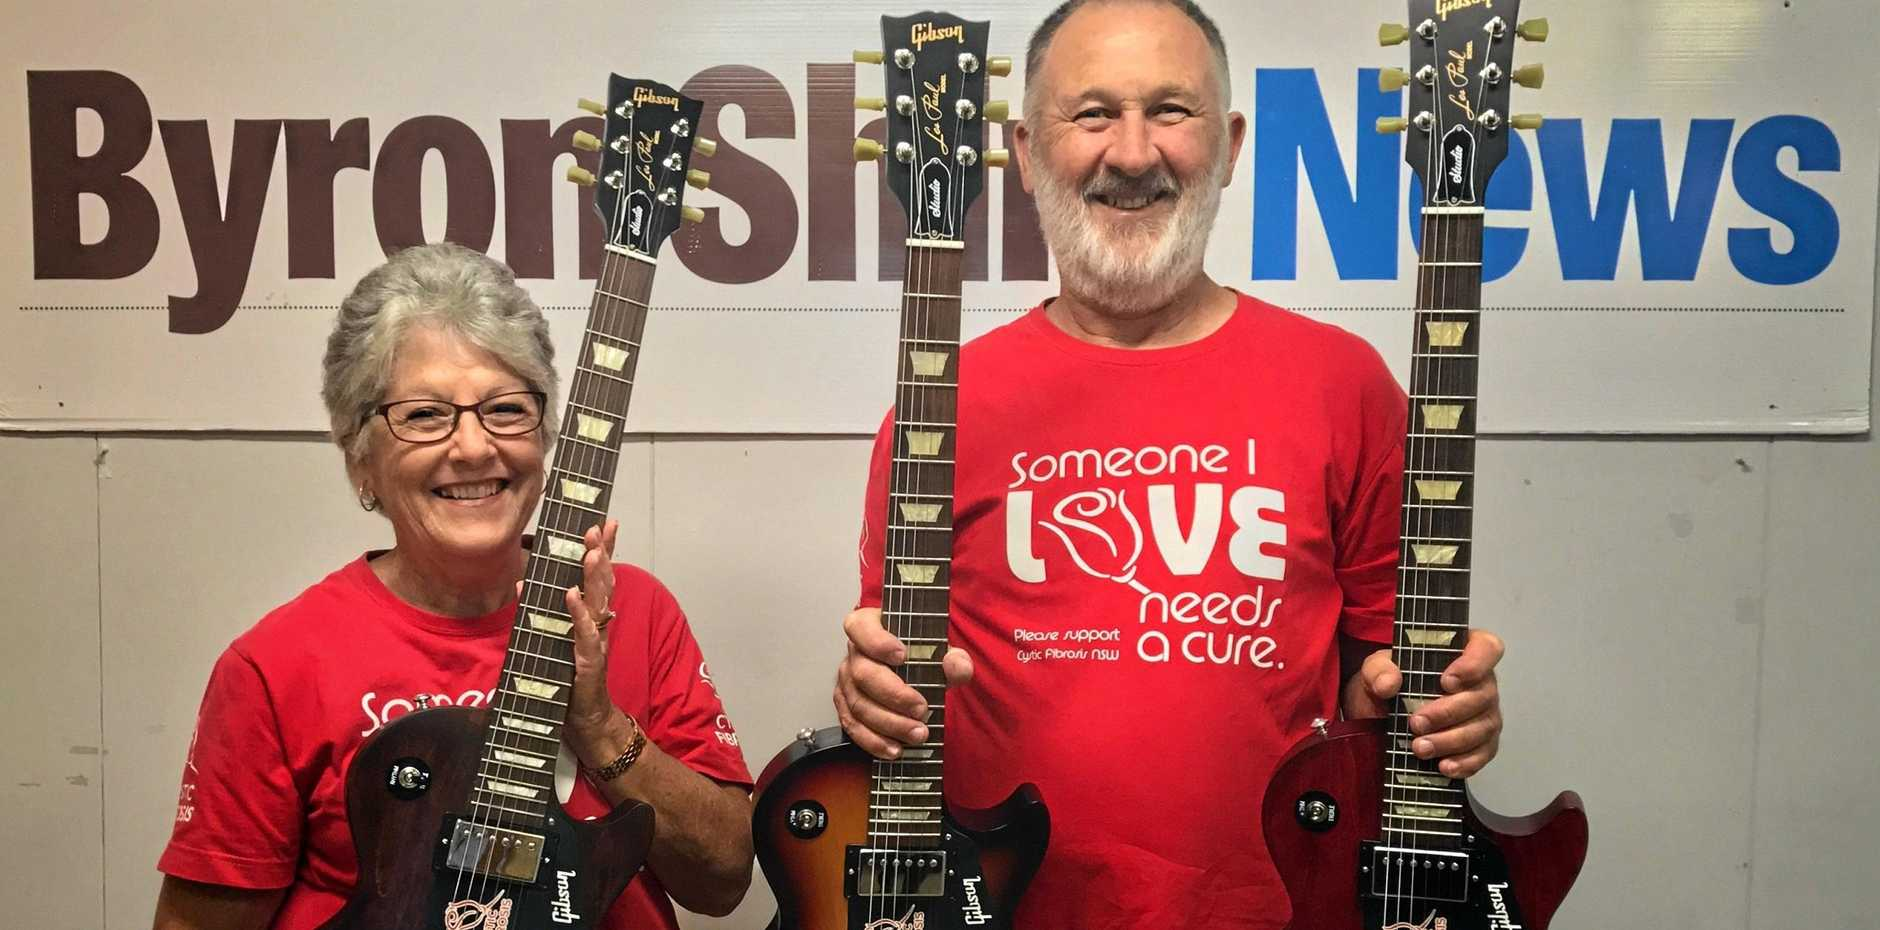 CAMPAIGNERS: Jenny and Alan Tunks on the fundraising trail with Gibson guitars they raffle at Bluesfest each year to raise money for research into a cure for cystic fibrosis.